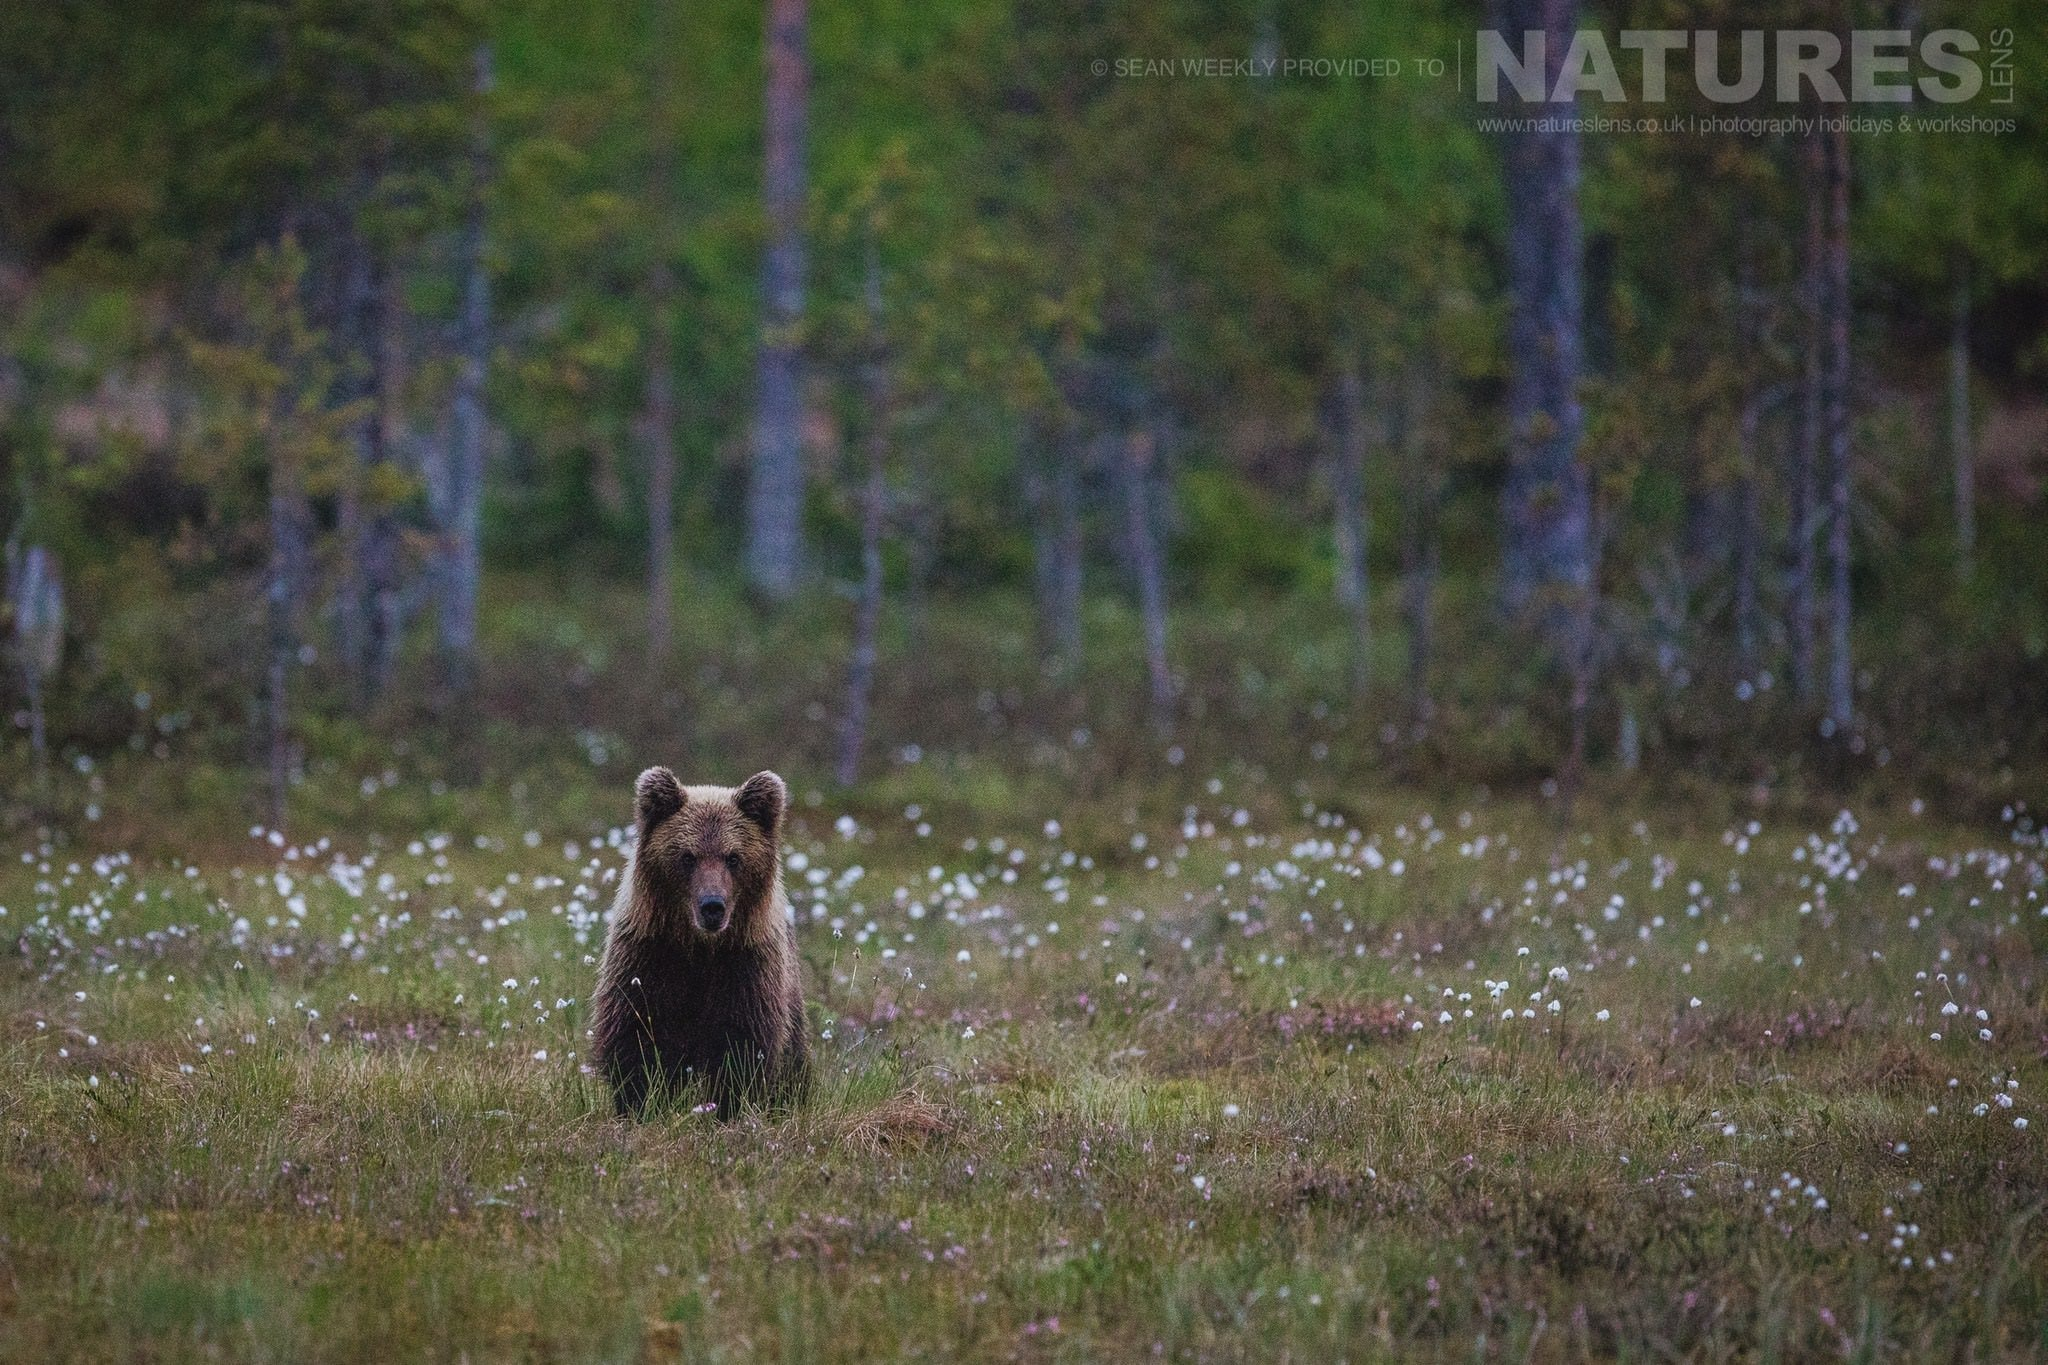 One Of The Younger Brown Bears Of Finland Sat Amongst The Cotton Grass   Photographed During The Wild Brown Bears Of Finland Photography Holiday